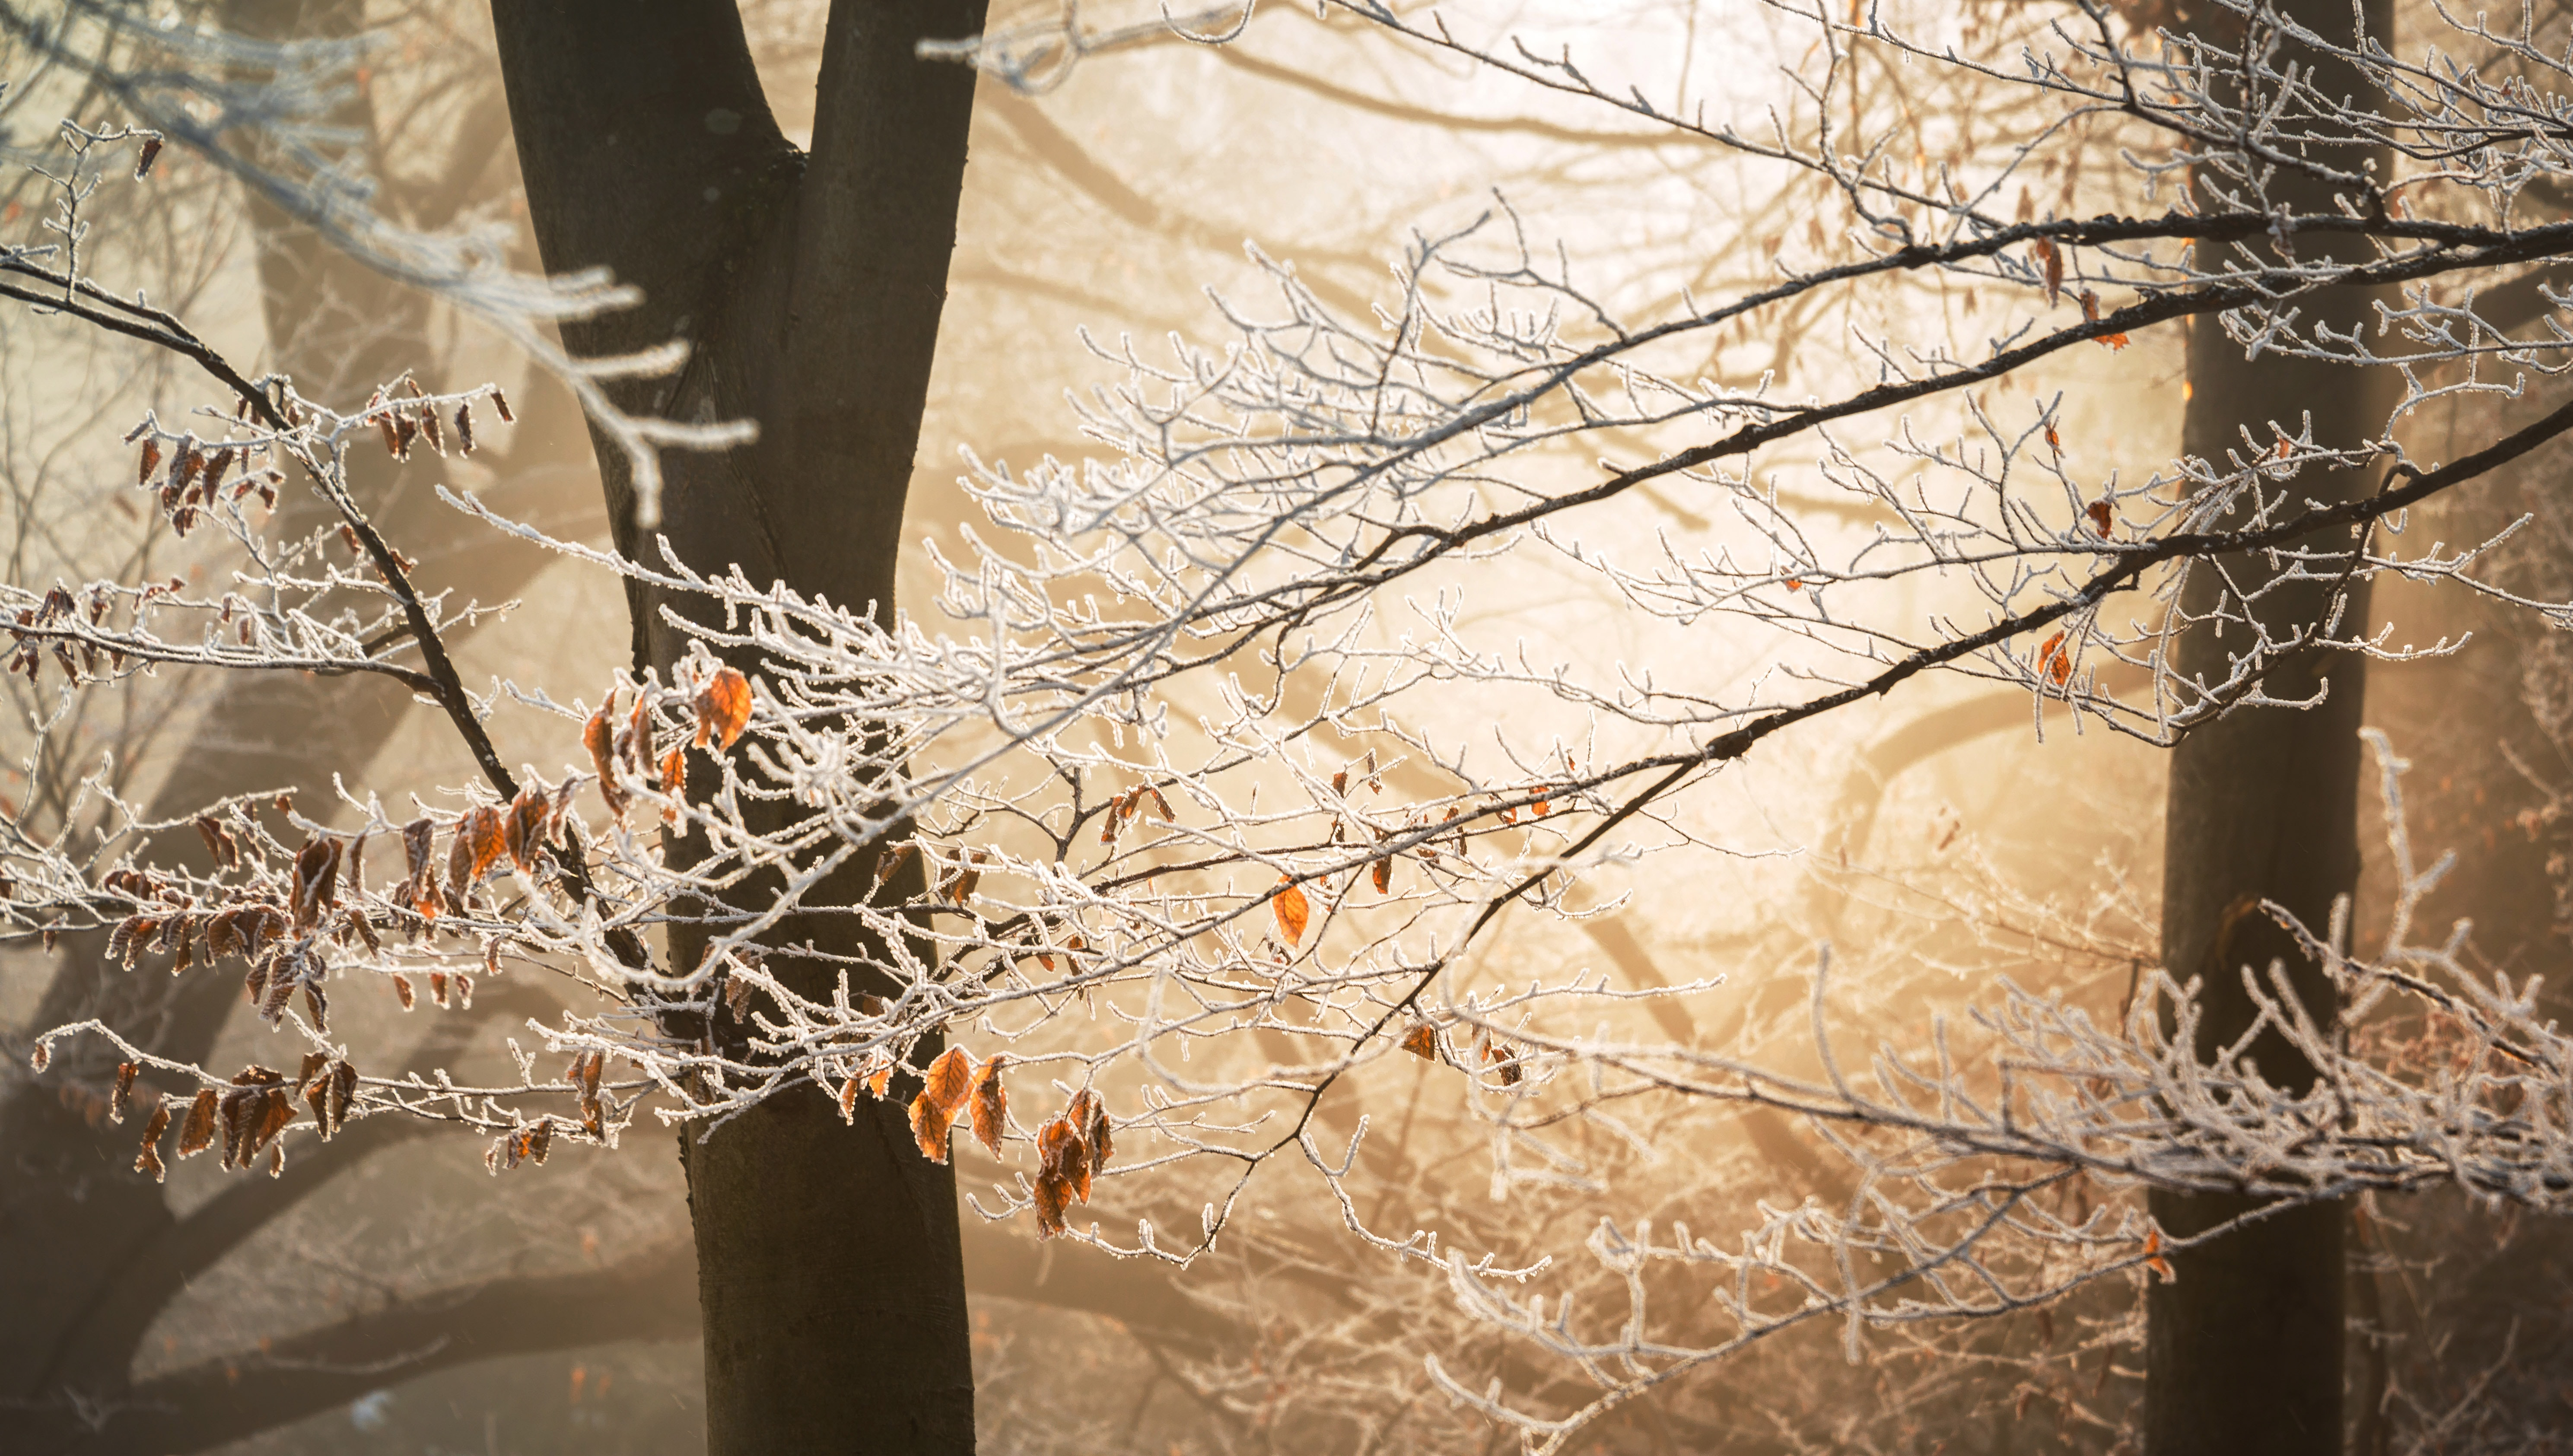 Sun illuminates the branches and their few remaining leaves all covered in frost